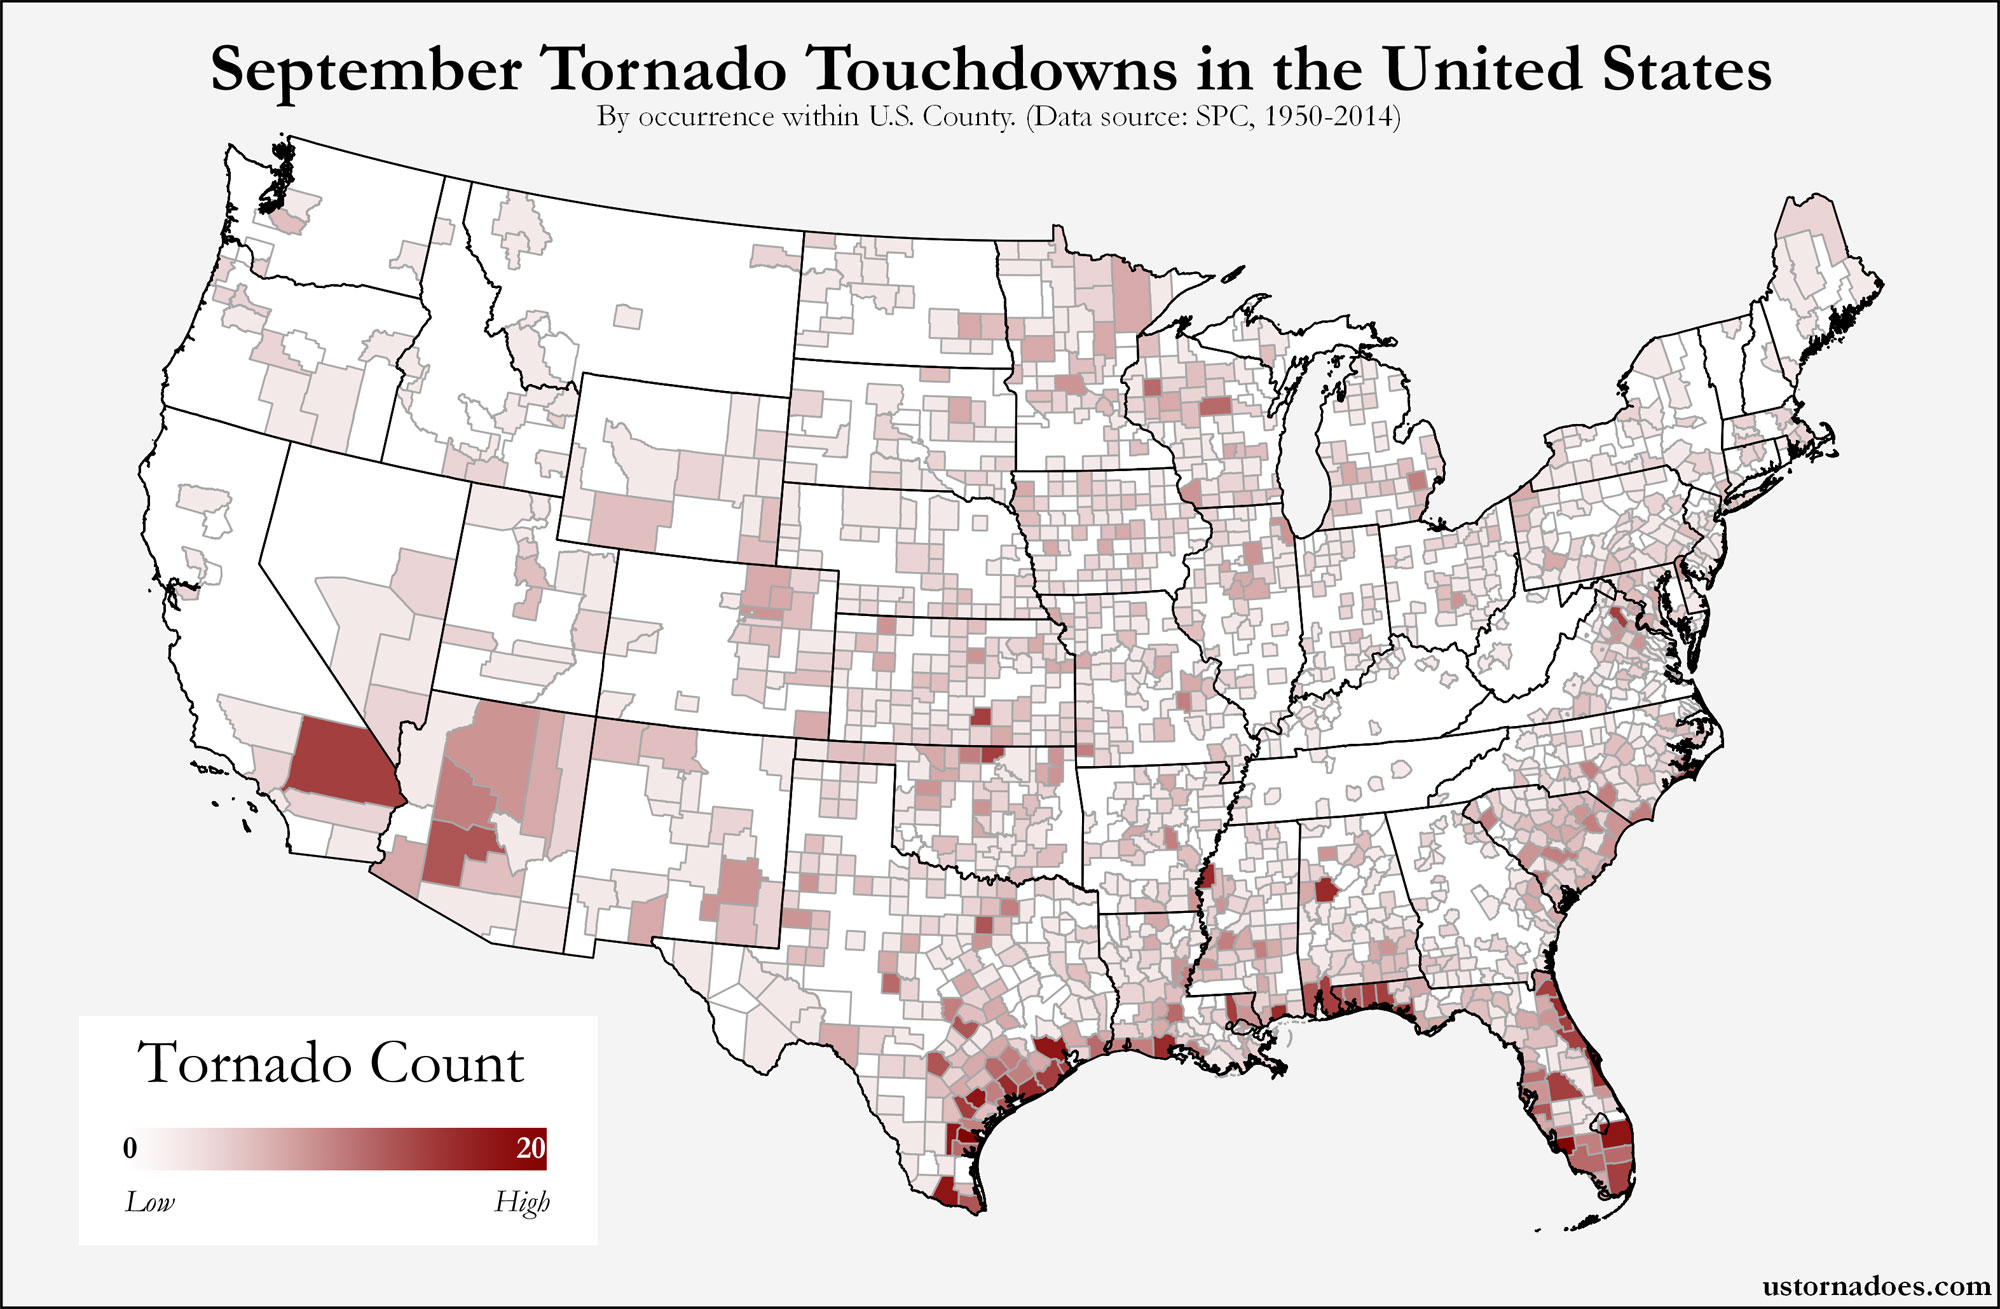 tornadoes in the united states essay By will dunham washington (reuters) - tornadoes in the united states are increasingly coming in swarms rather than as isolated.